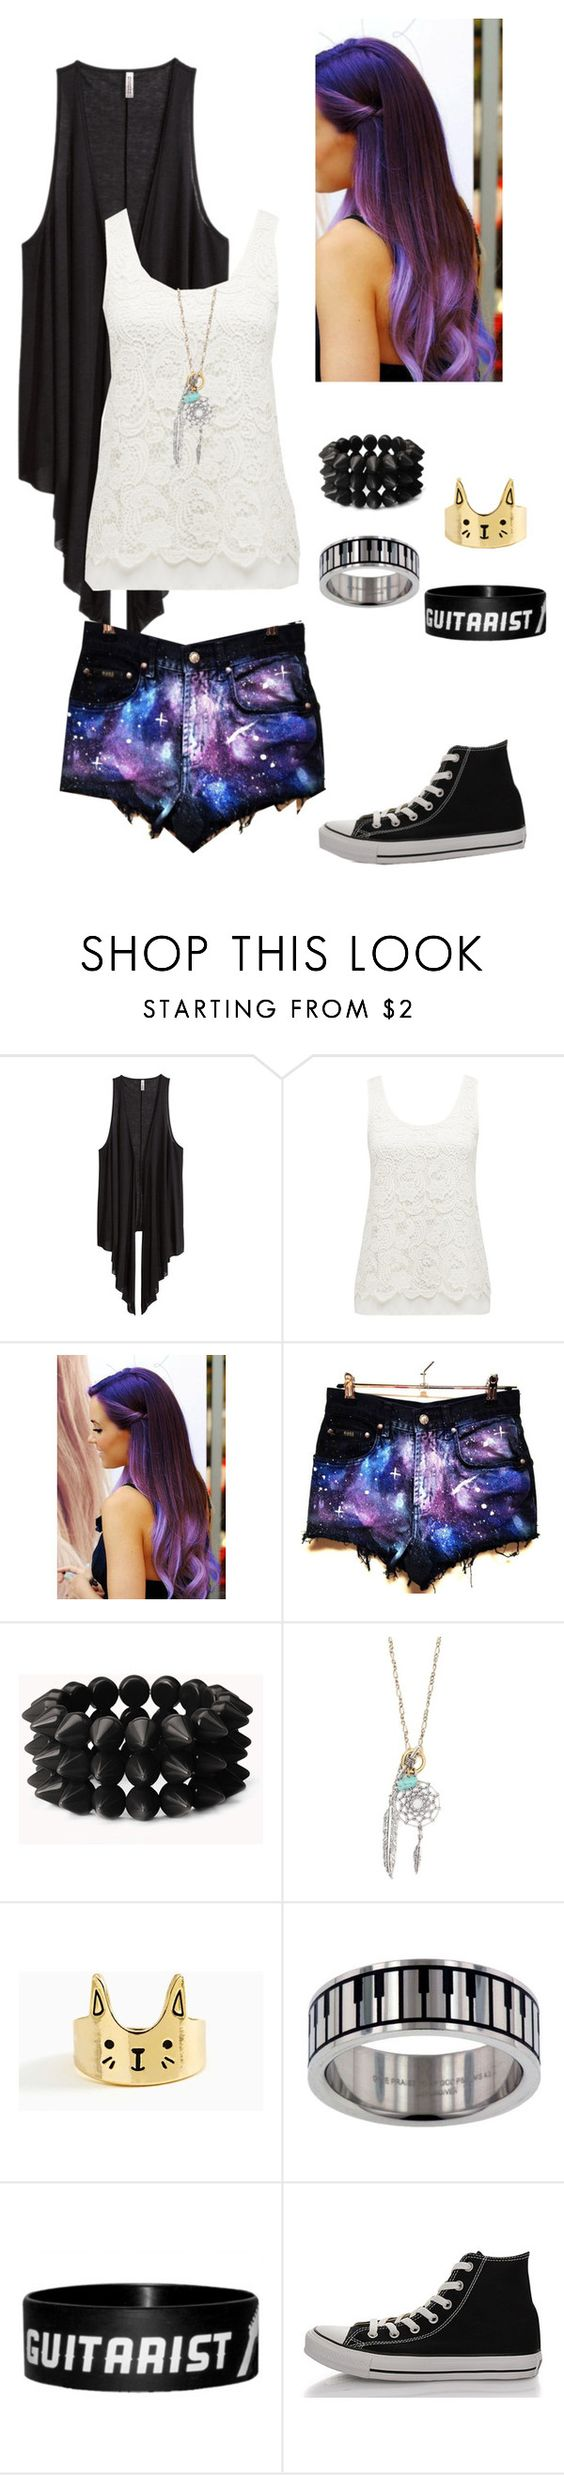 """Untitled #34"" by fossfirer5 ❤ liked on Polyvore featuring H&M, Forever New, Forever 21, With Love From CA, Converse, galaxy, R5 and R5family"